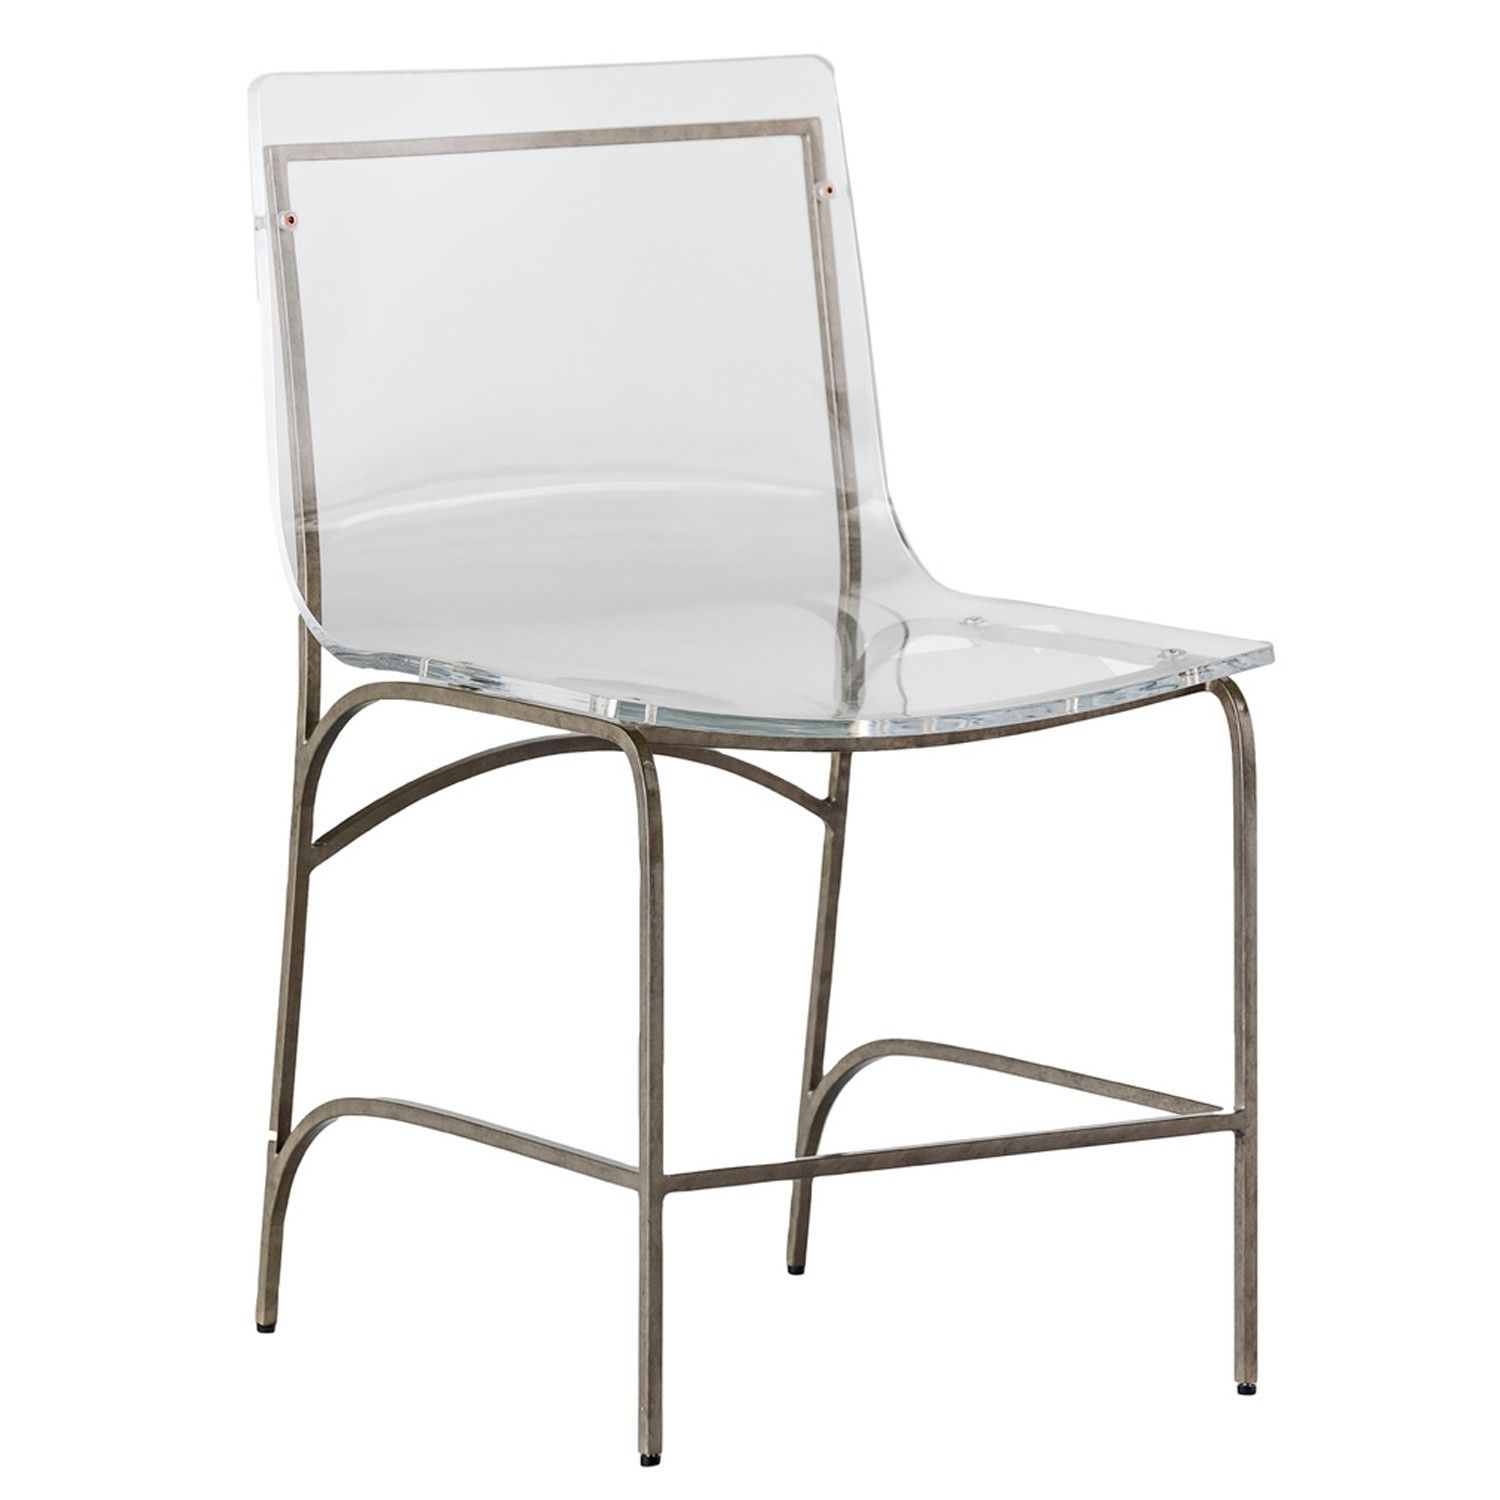 The Penelope Clear Lucite And Silver Metal Dining Chair Is A Clear Acrylic  Dining Chair With An Antique Silver Metal Base That Has A Subtle Curve To  The ...